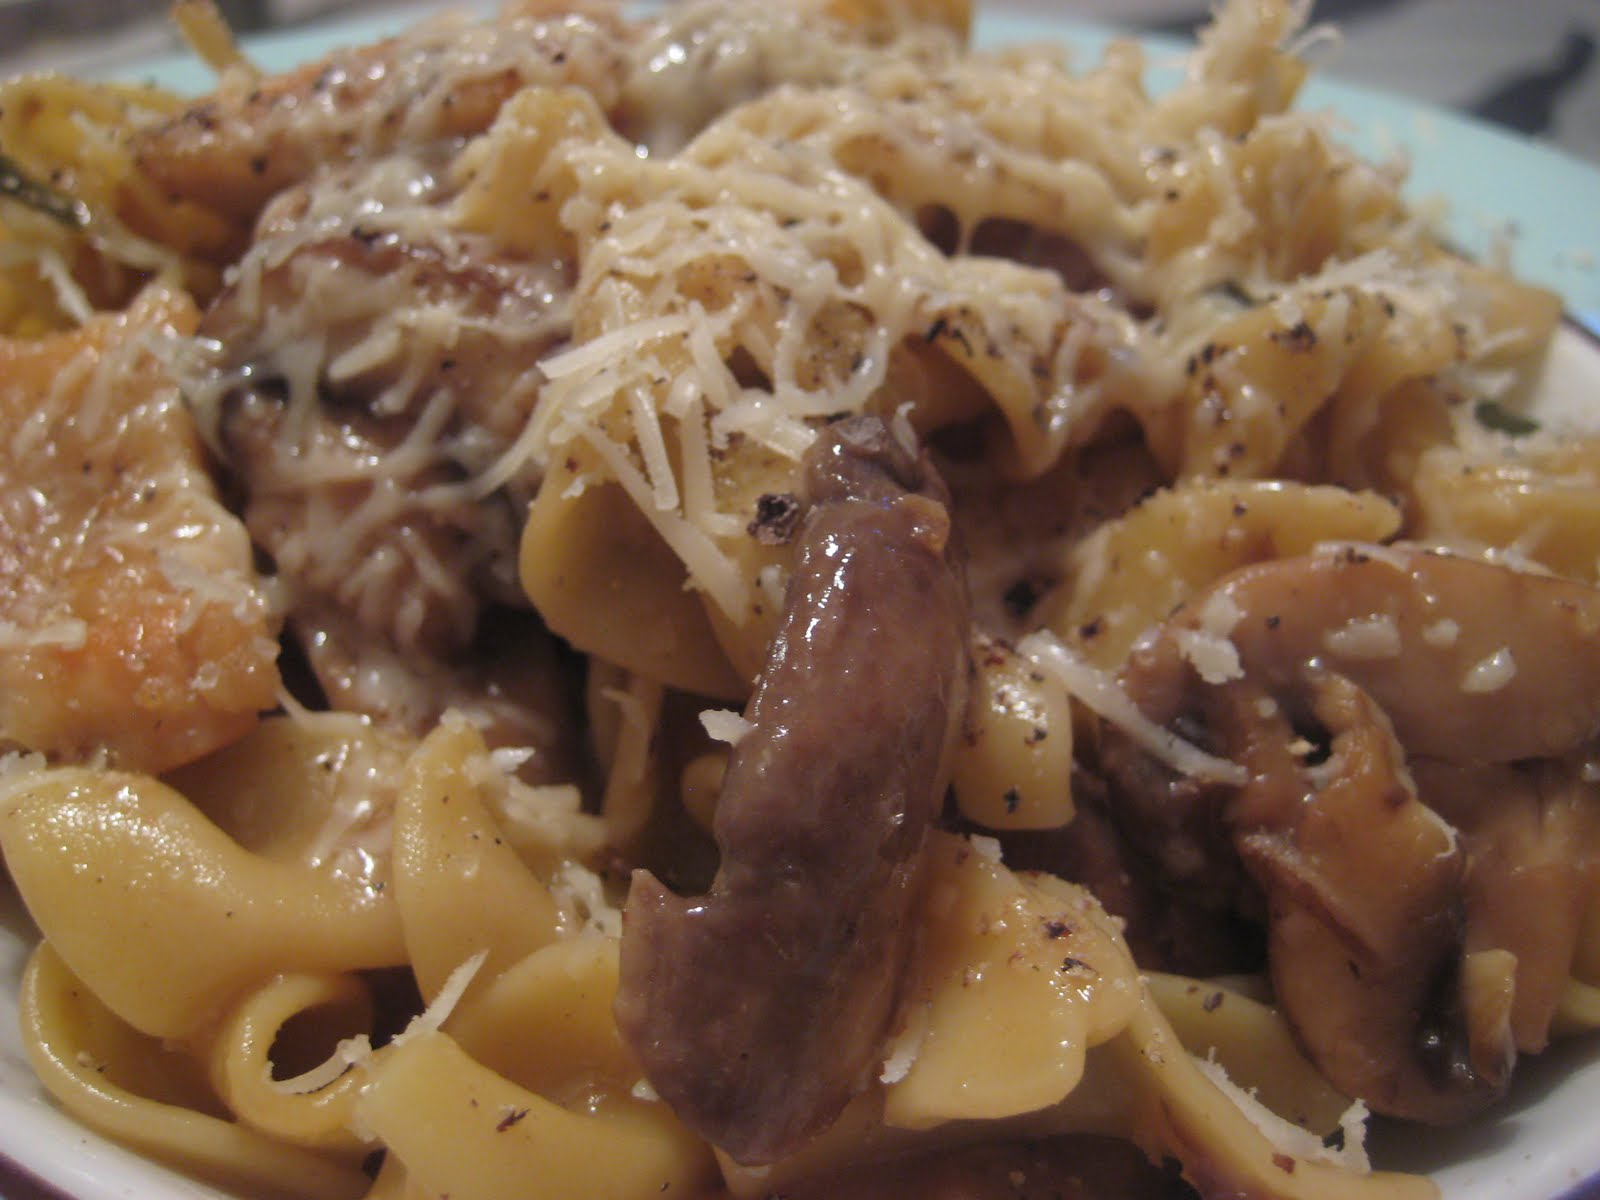 One Couple's Kitchen: Chicken & Mushrooms in Garlic White Wine Sauce